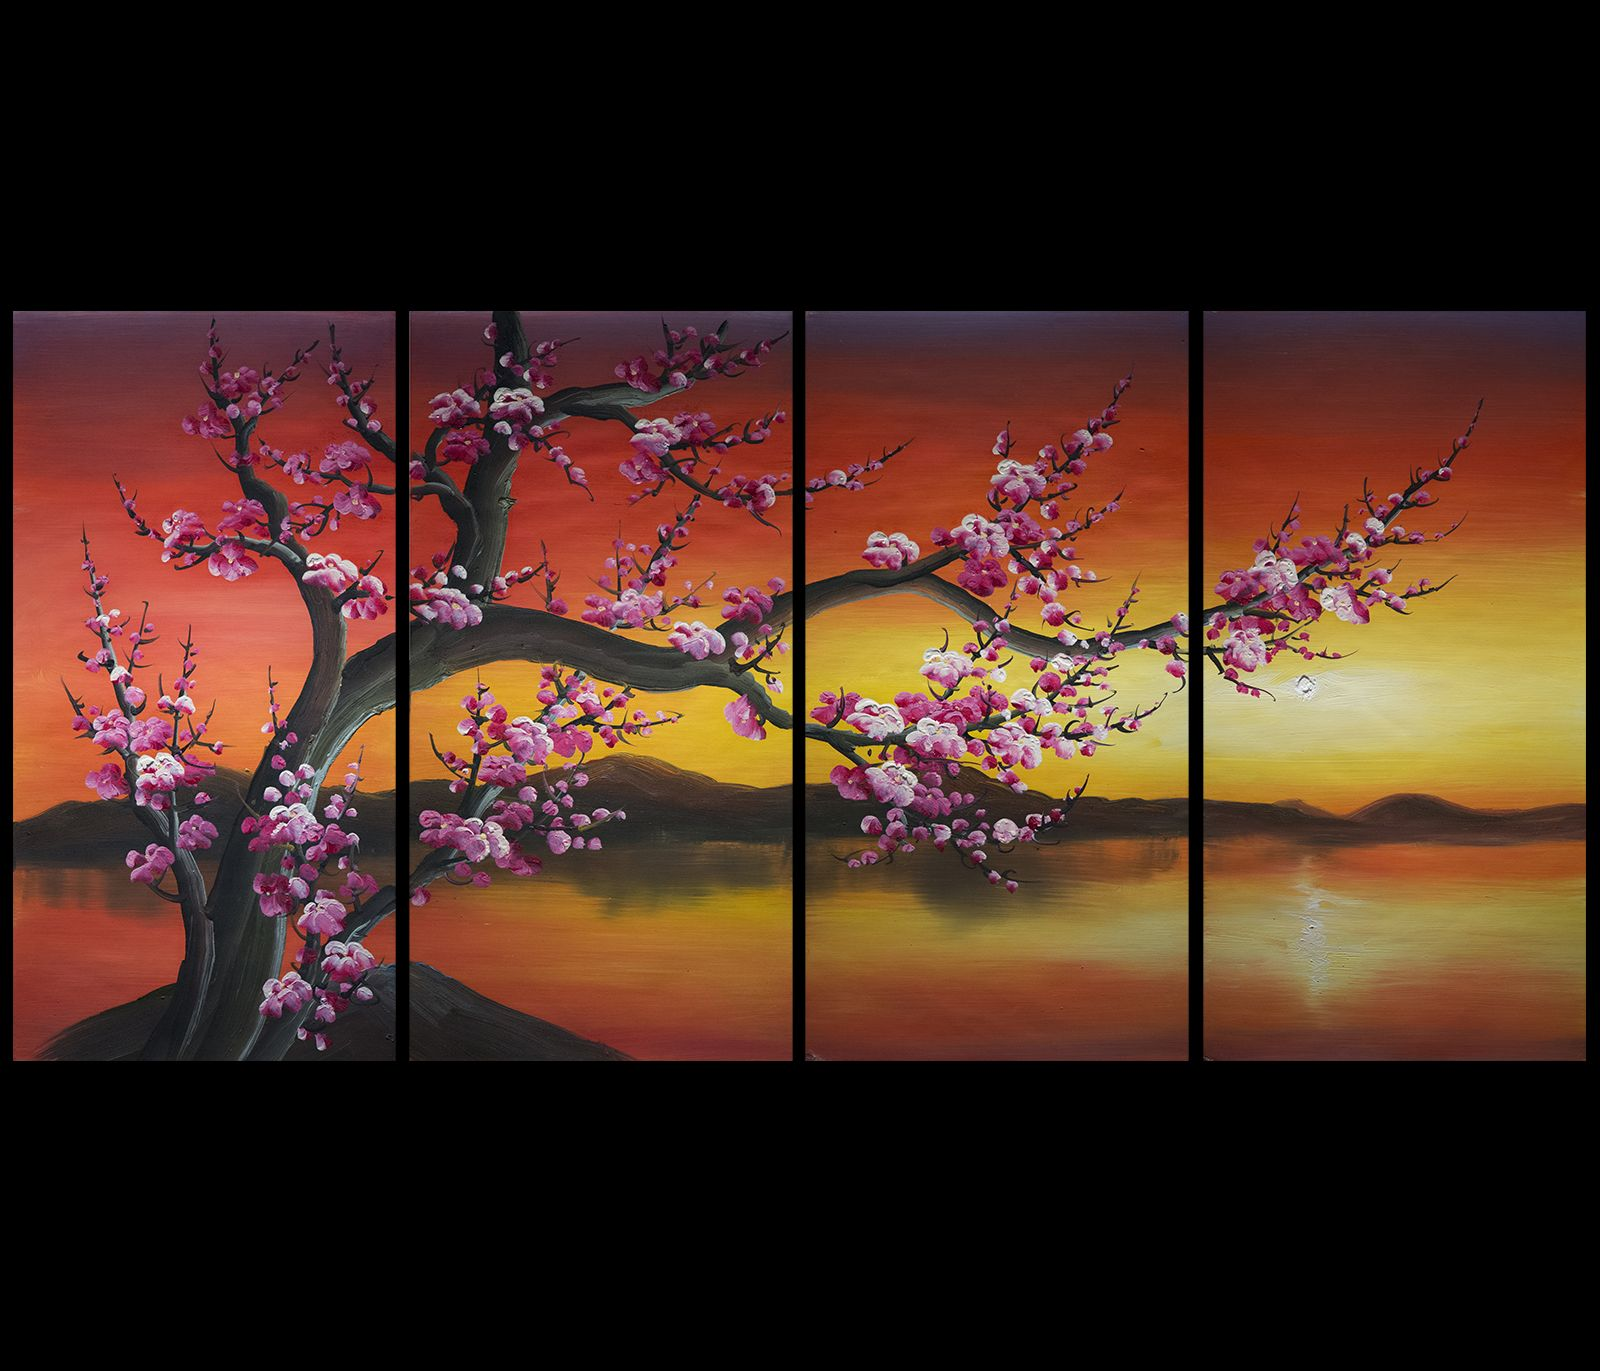 Wall Art Decor Feng Shui Painting Chinese Cherry Blossom Painting Cherry Blossom Painting Chinese Cherry Blossom Feng Shui Paintings